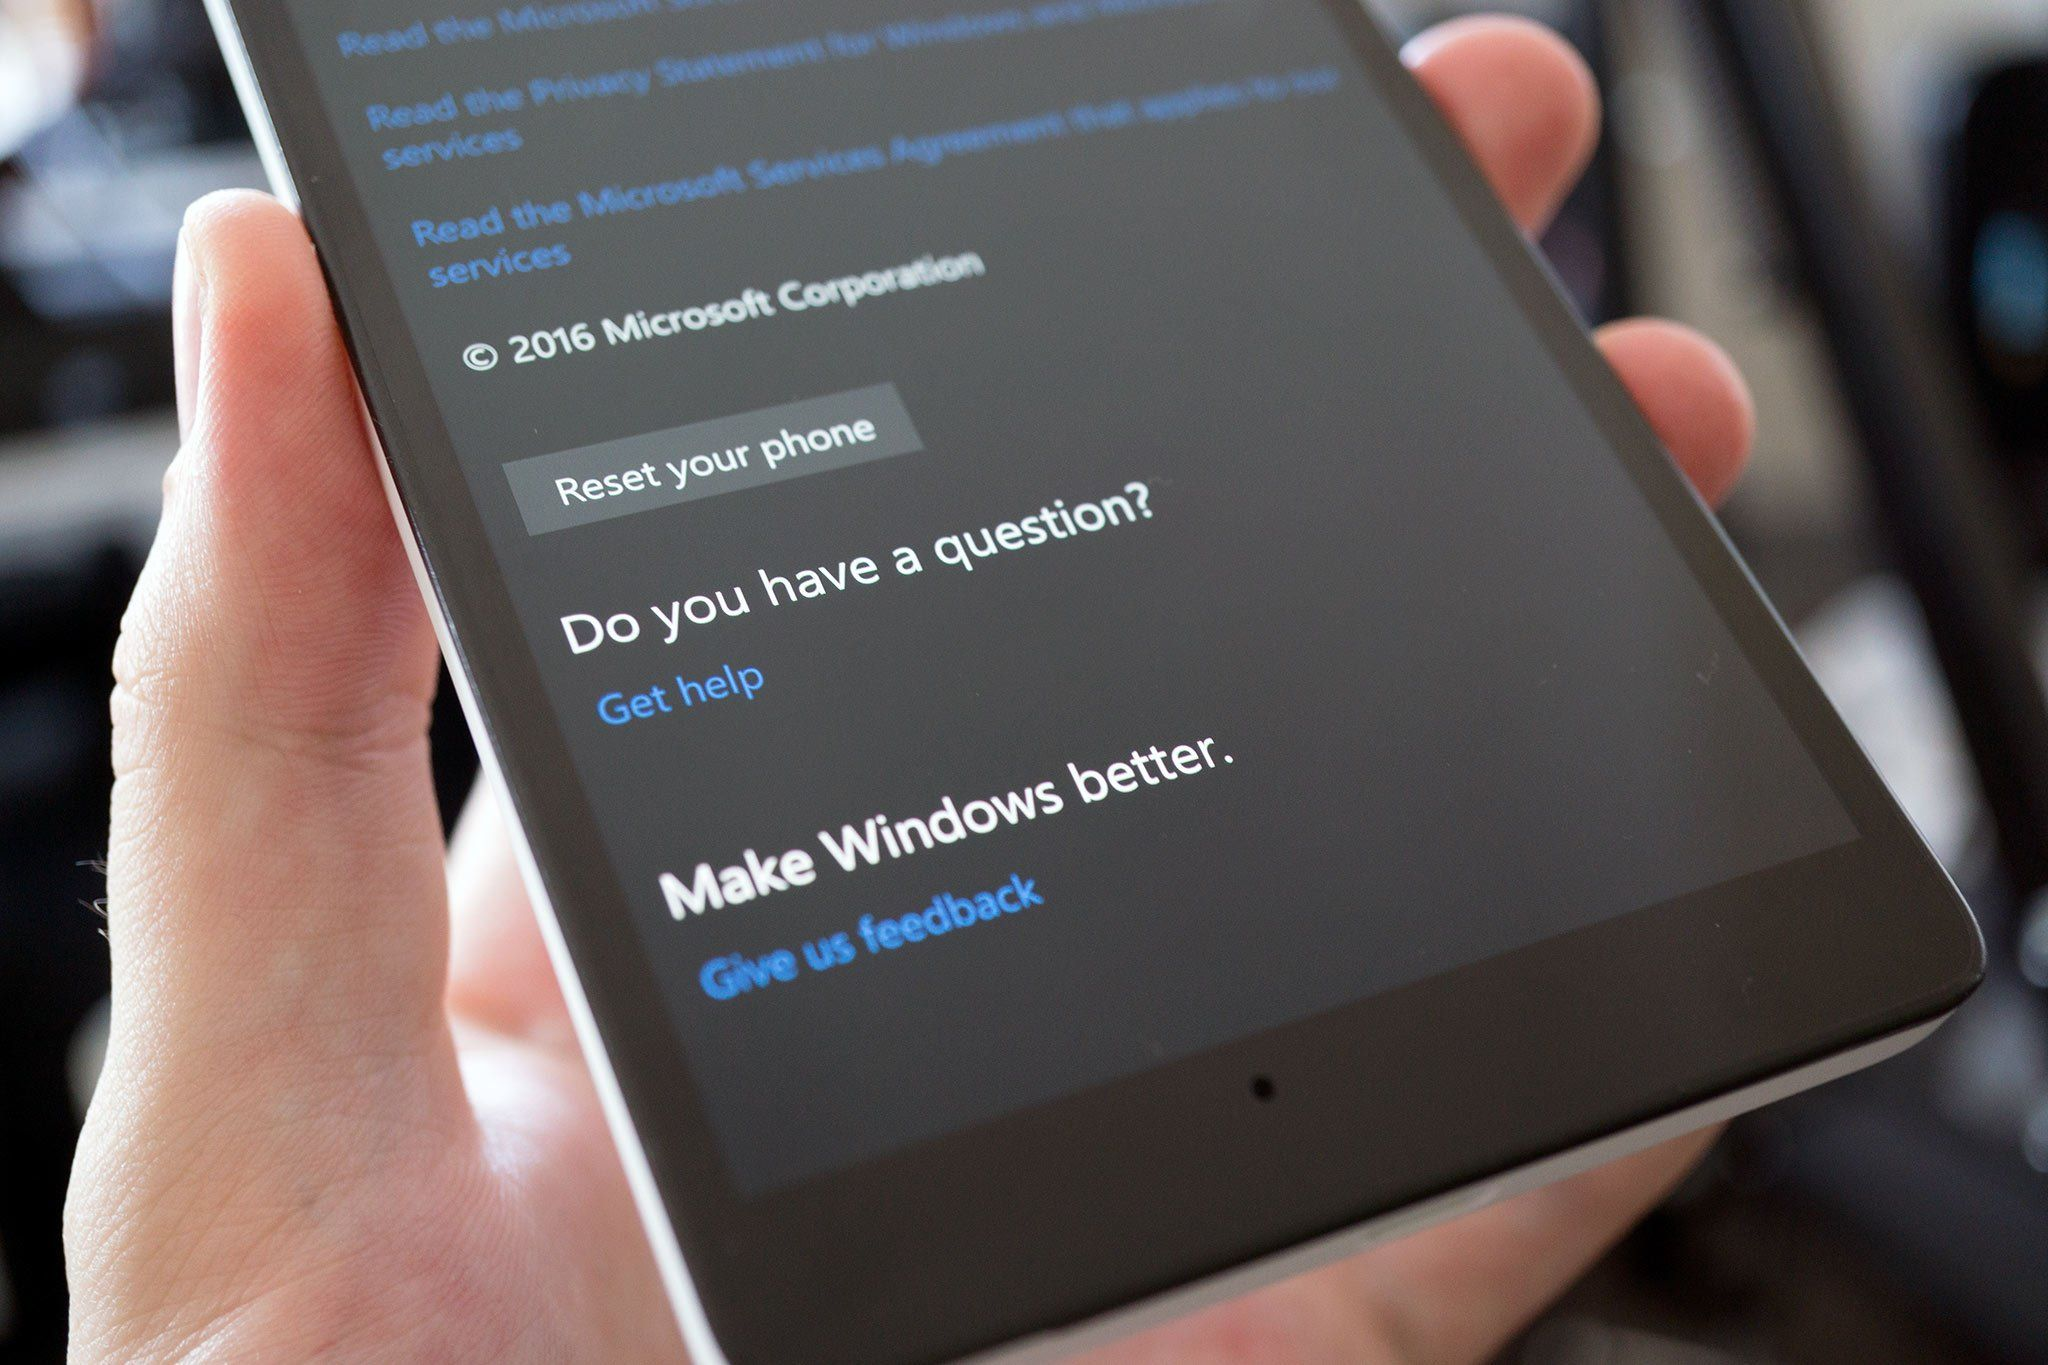 Have you had bad experiences with Microsoft's Windows 10 Mobile tech support?